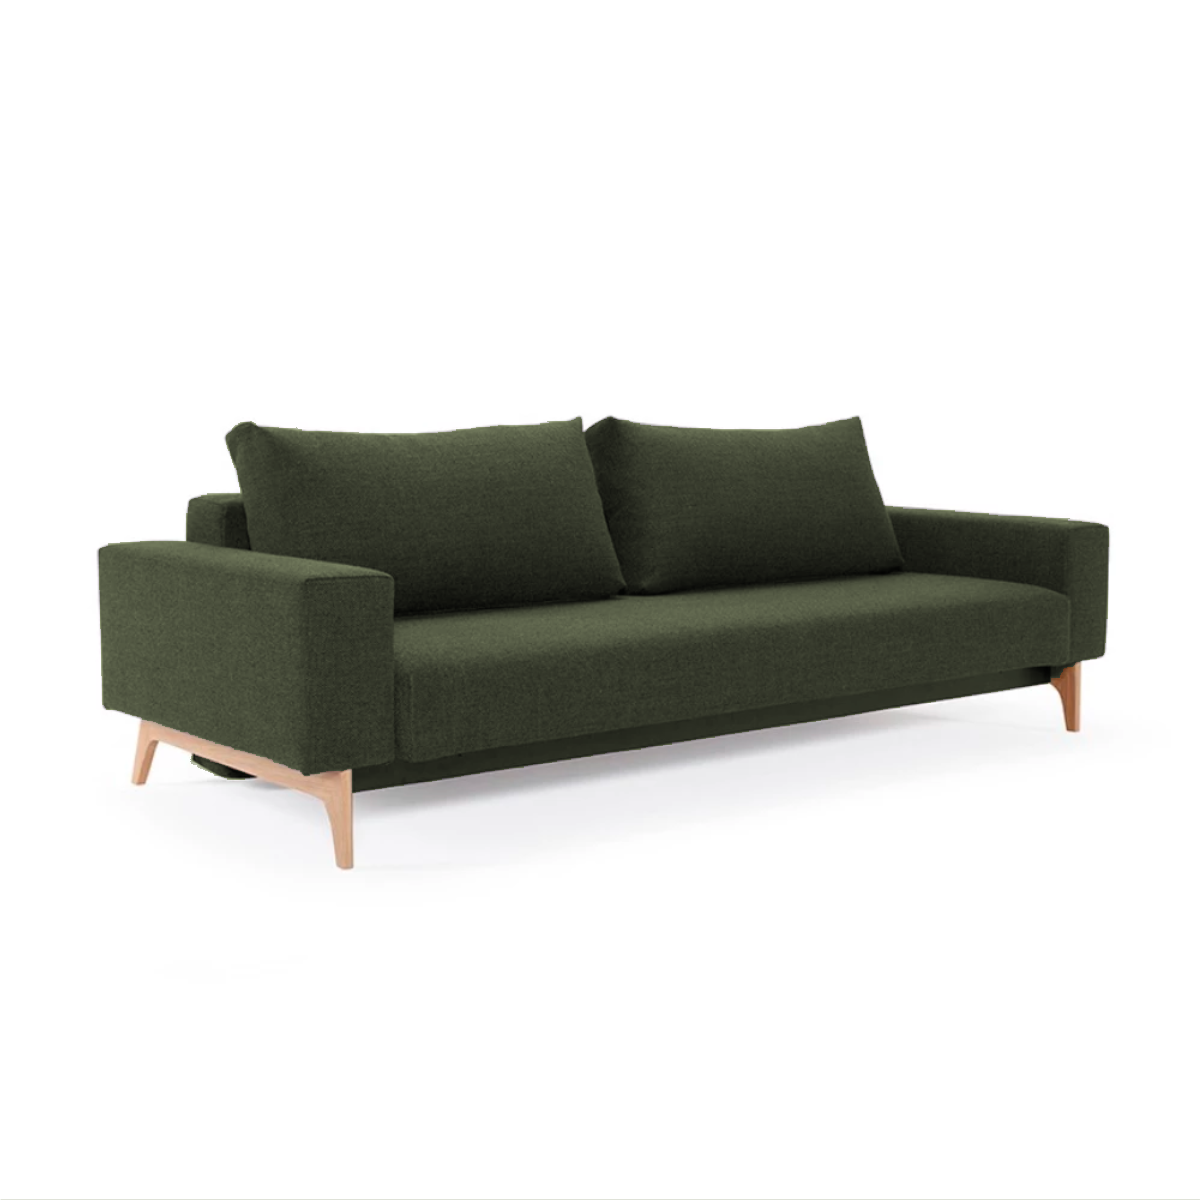 Innovation Living Idun Sofabed with Arms L238xD100cm 562 Mixed Dance Green